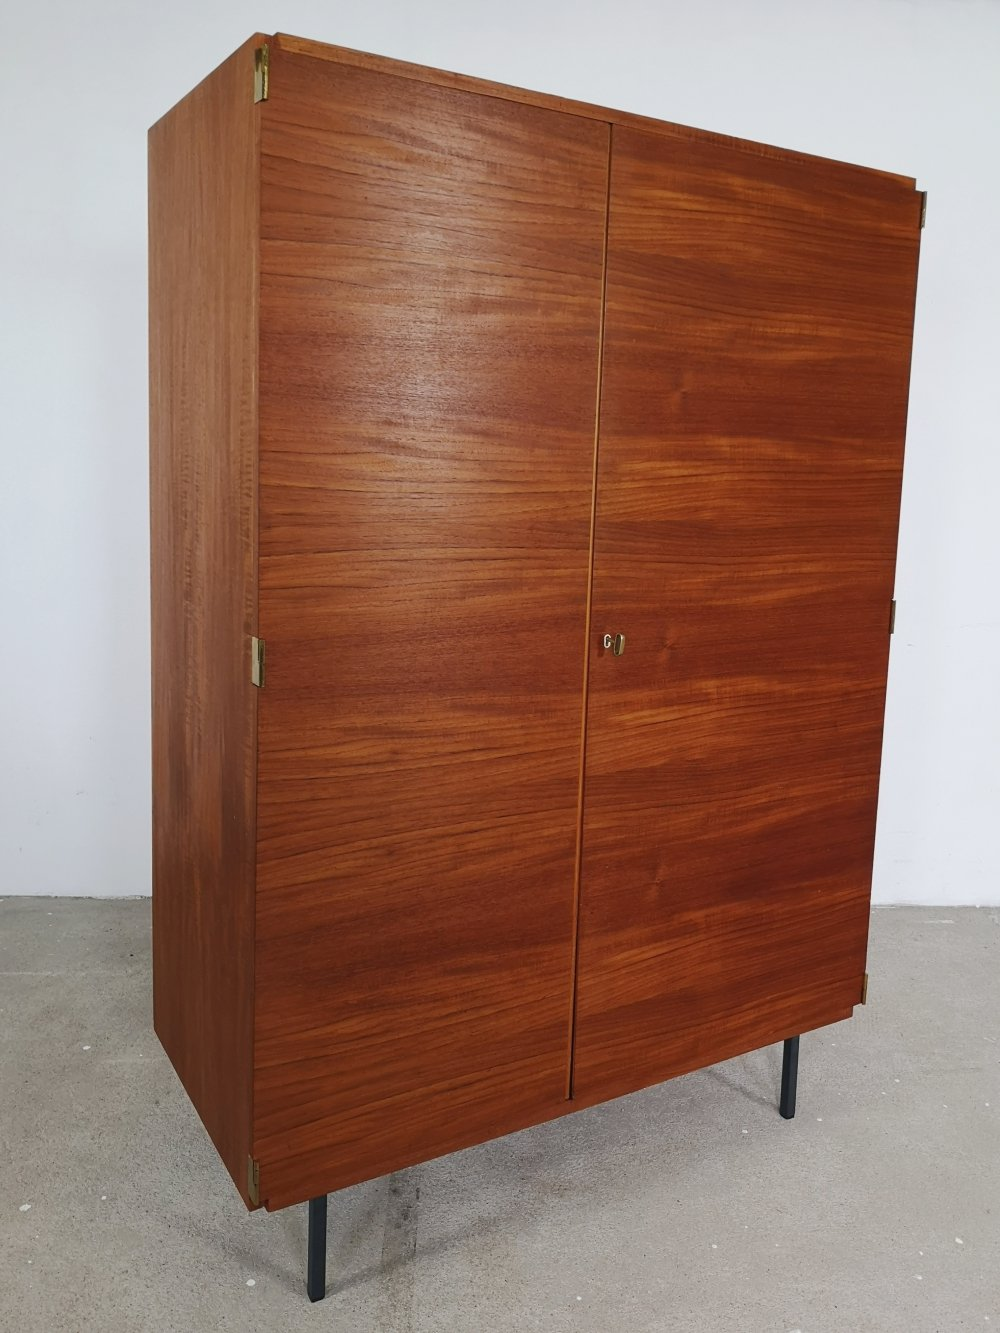 Teak wardrobe with gold colored details